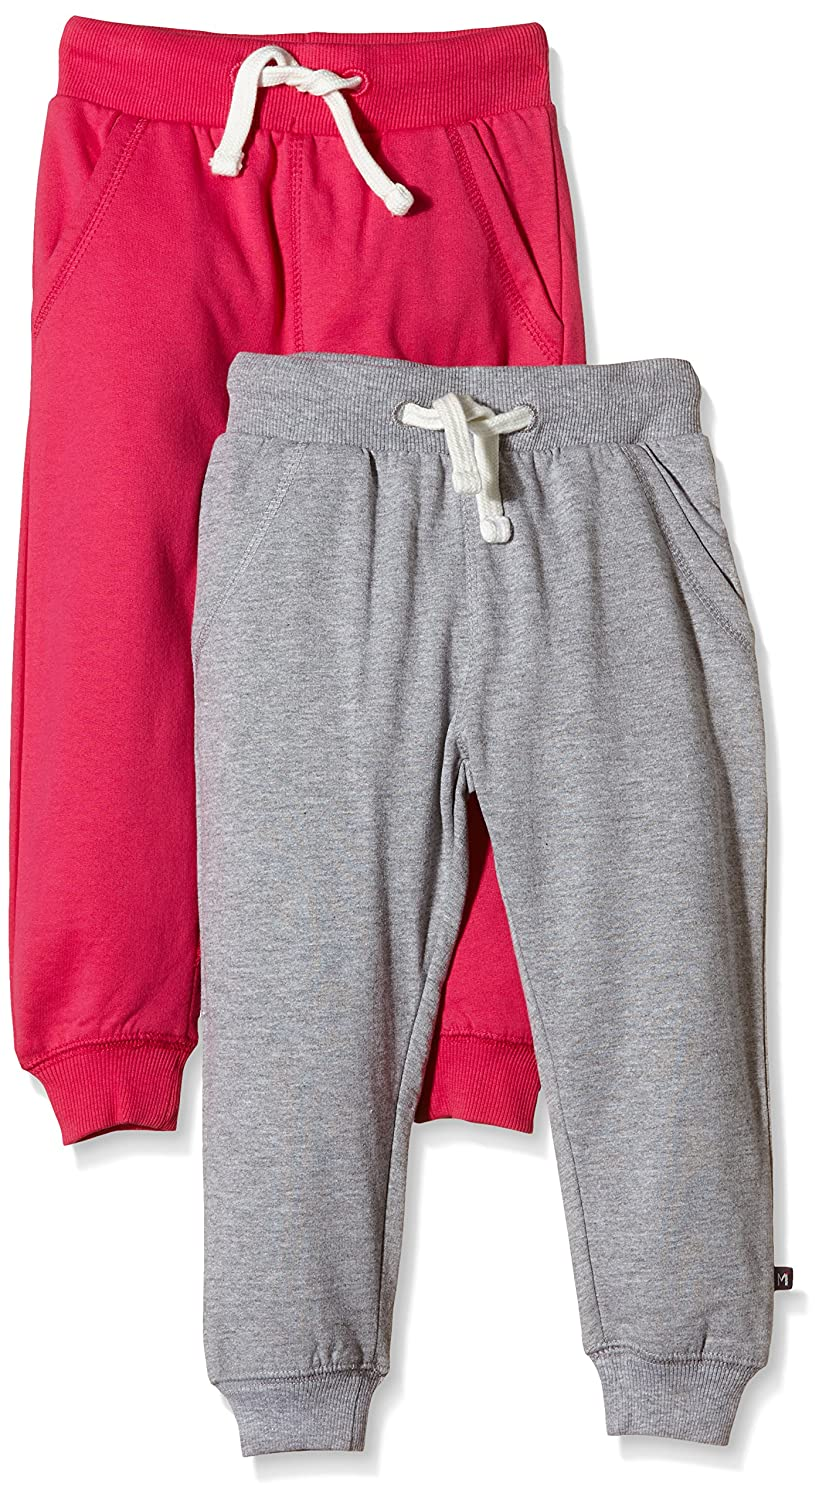 Magic Kids Girl's Sweatpants, Pack of 2 Brands 4 Kids A/S 4131